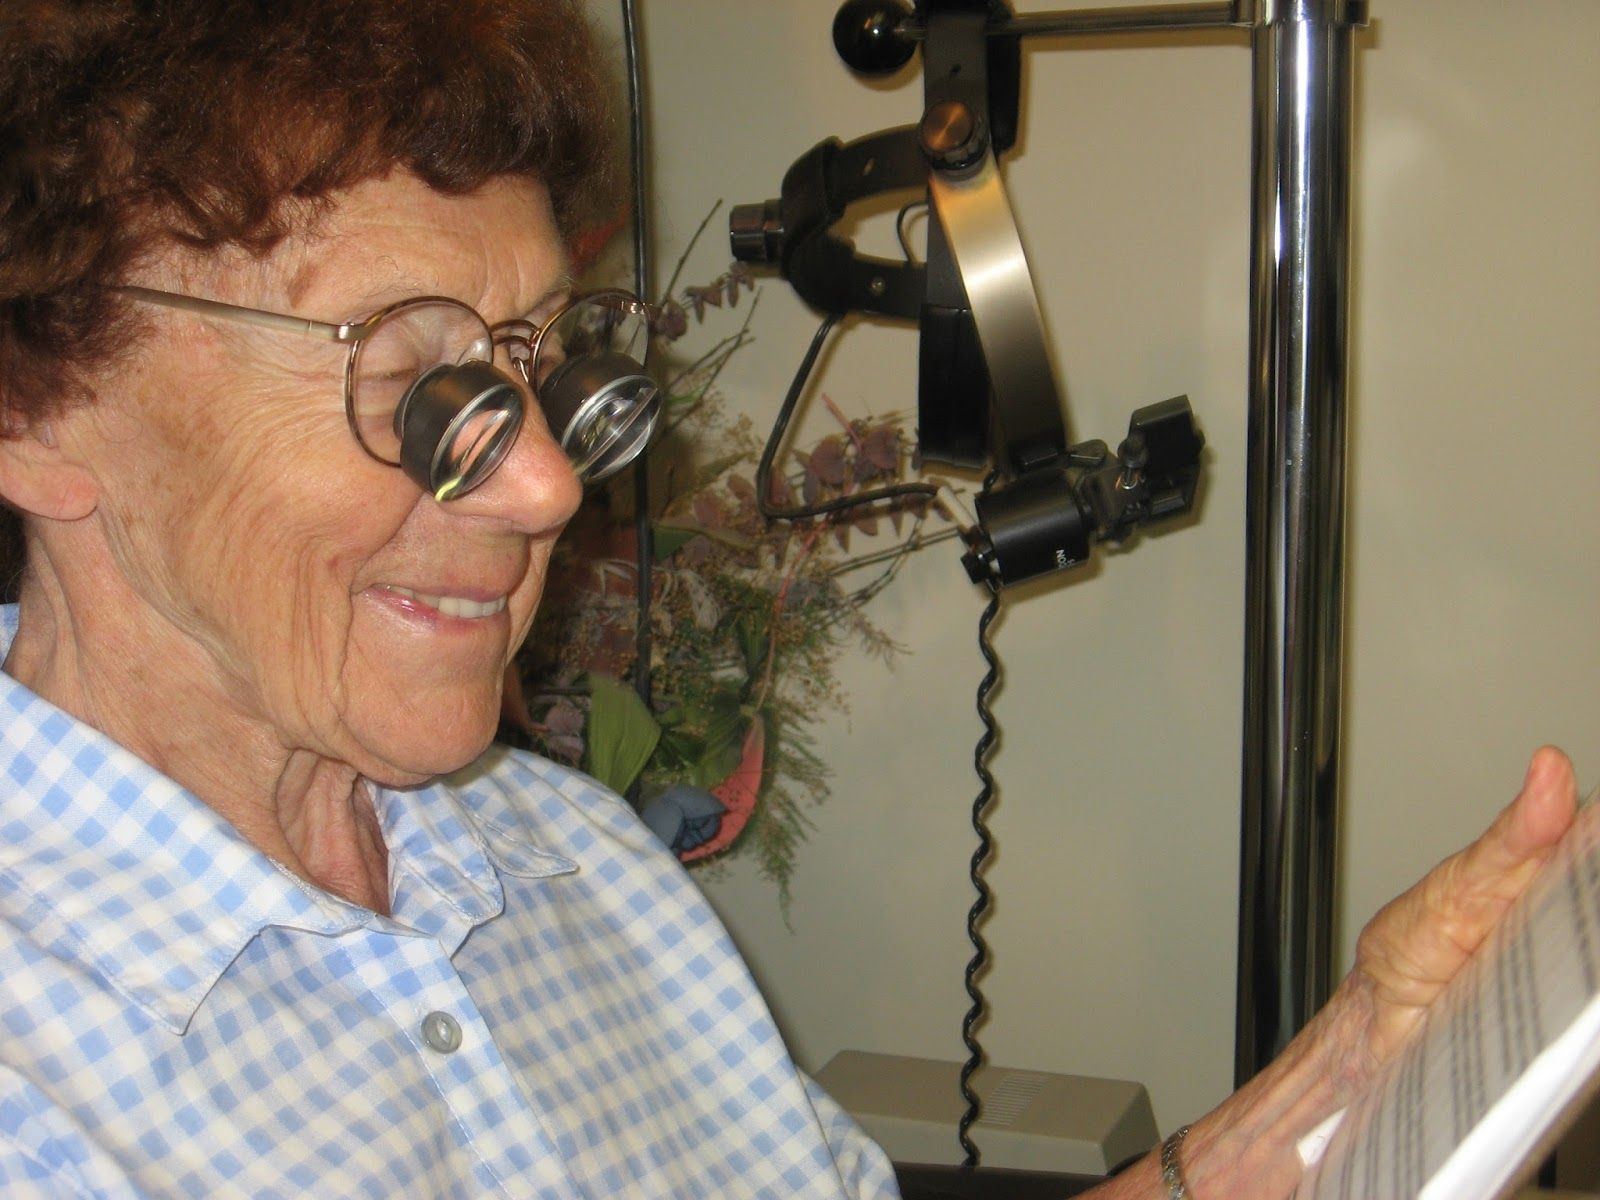 Low Vision Eyeglasses Lowvisioneyeglasses Com Facts About